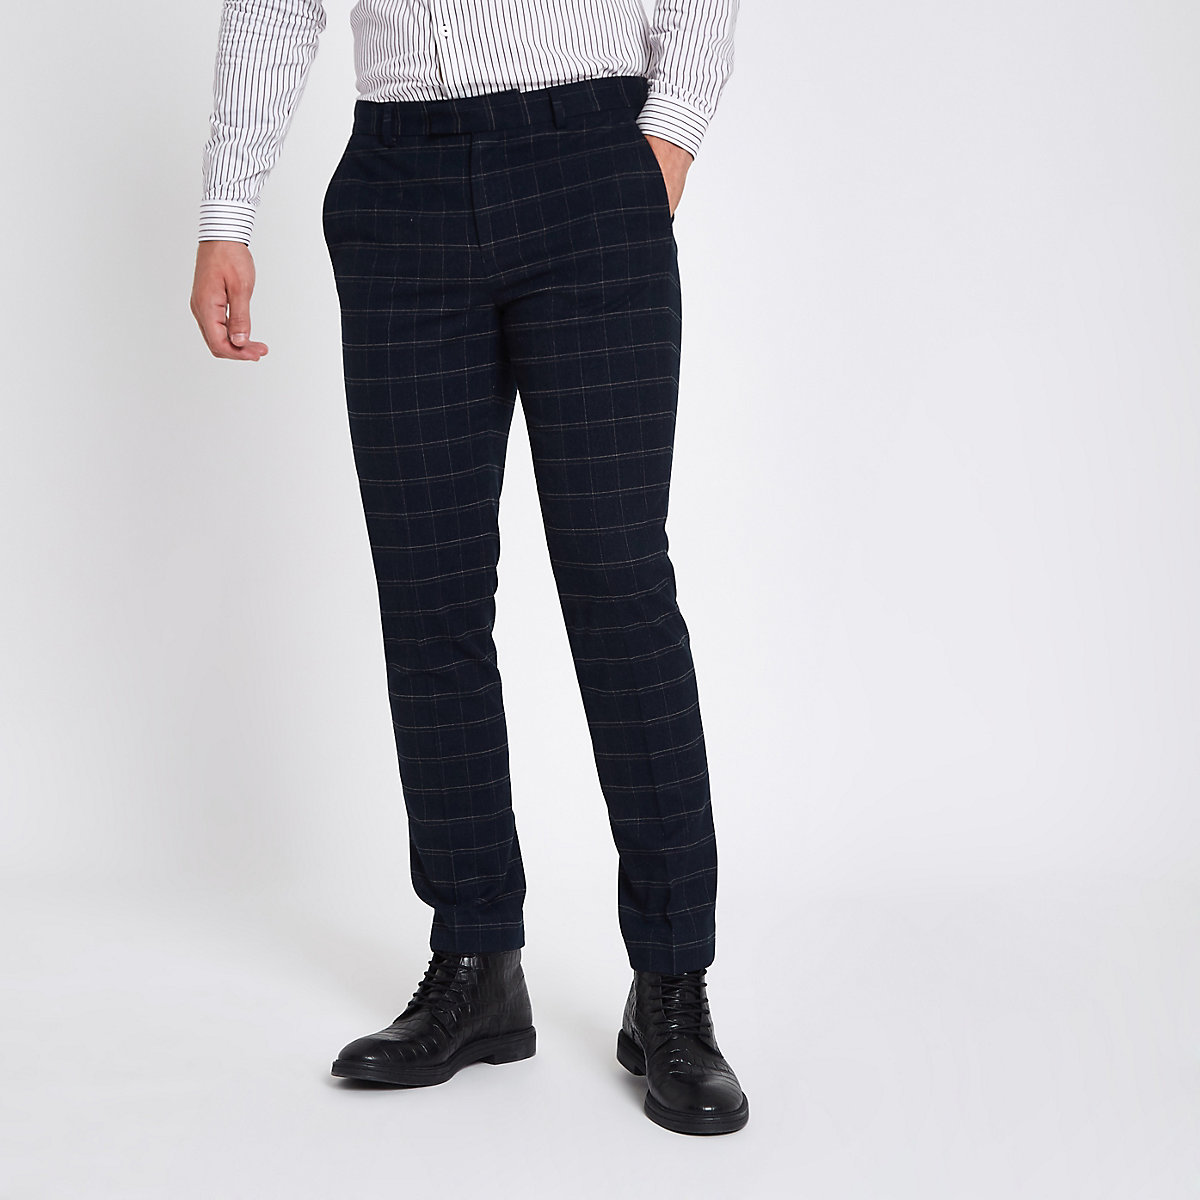 Navy window pane check skinny suit trousers